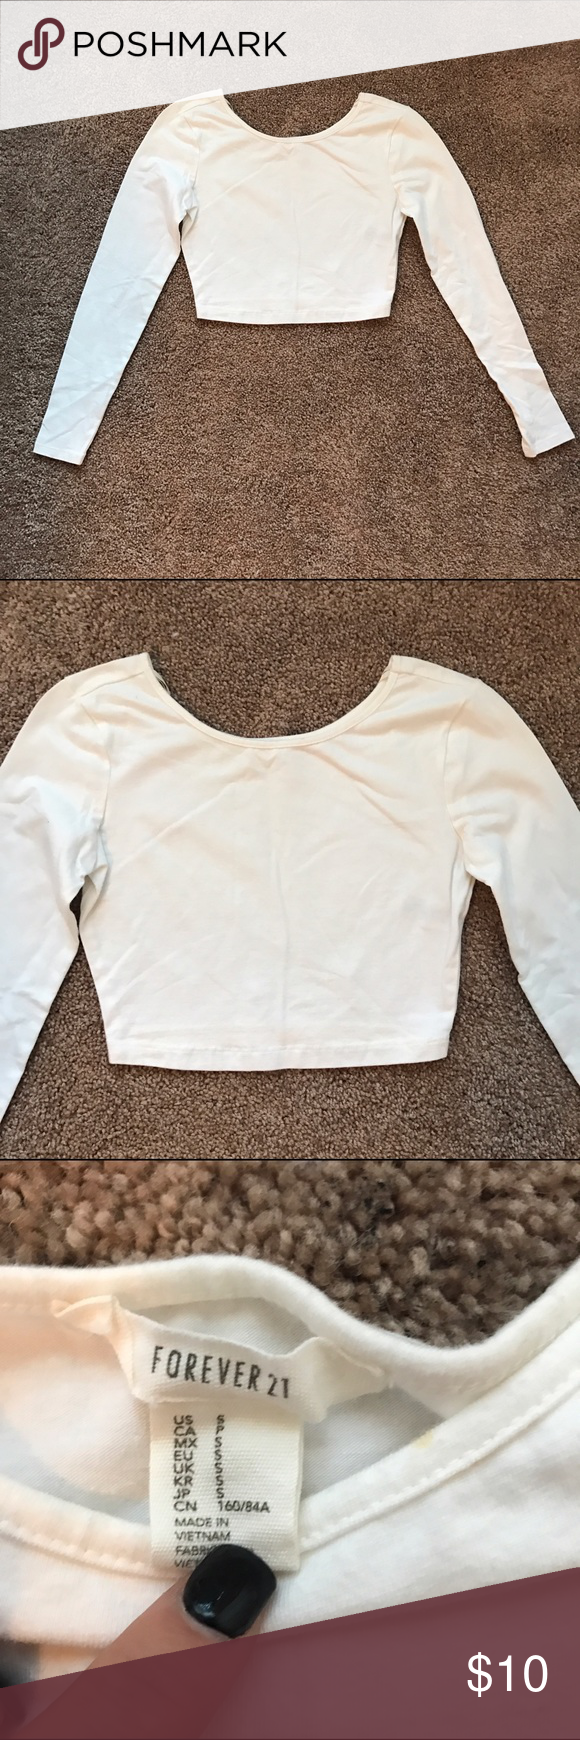 White Long Sleeve Crop Top. Never worn. No trades. True to size. Size small. Forever 21 Tops